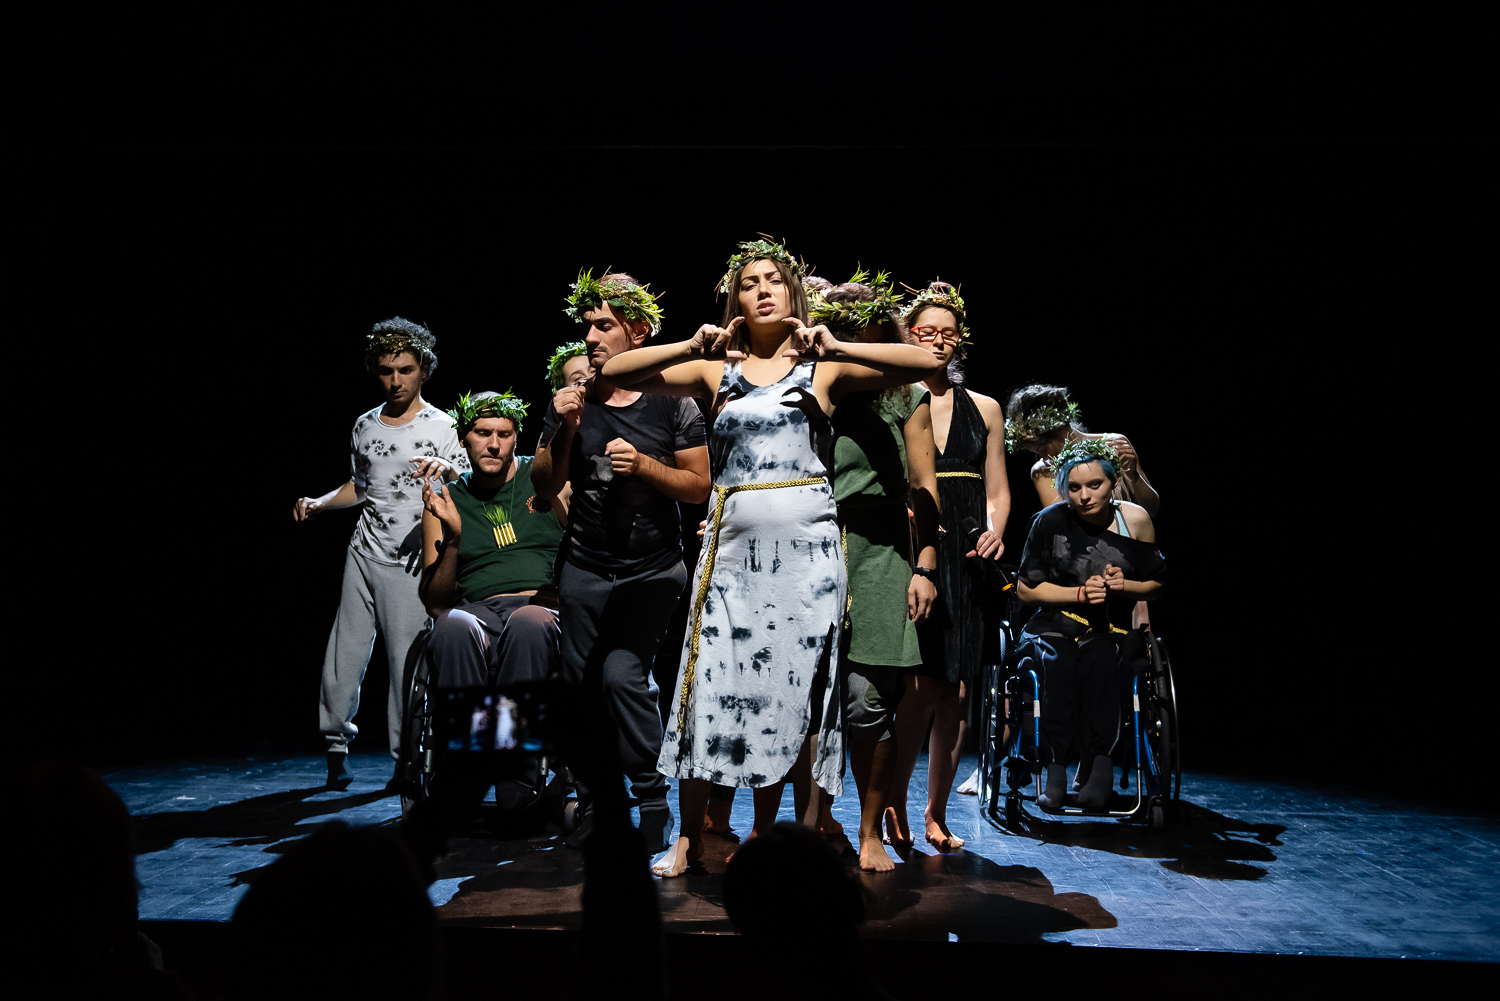 10 disabled and non-disabled performers standing on a stage huddled together, all of them are wearing olive wreaths on their heads